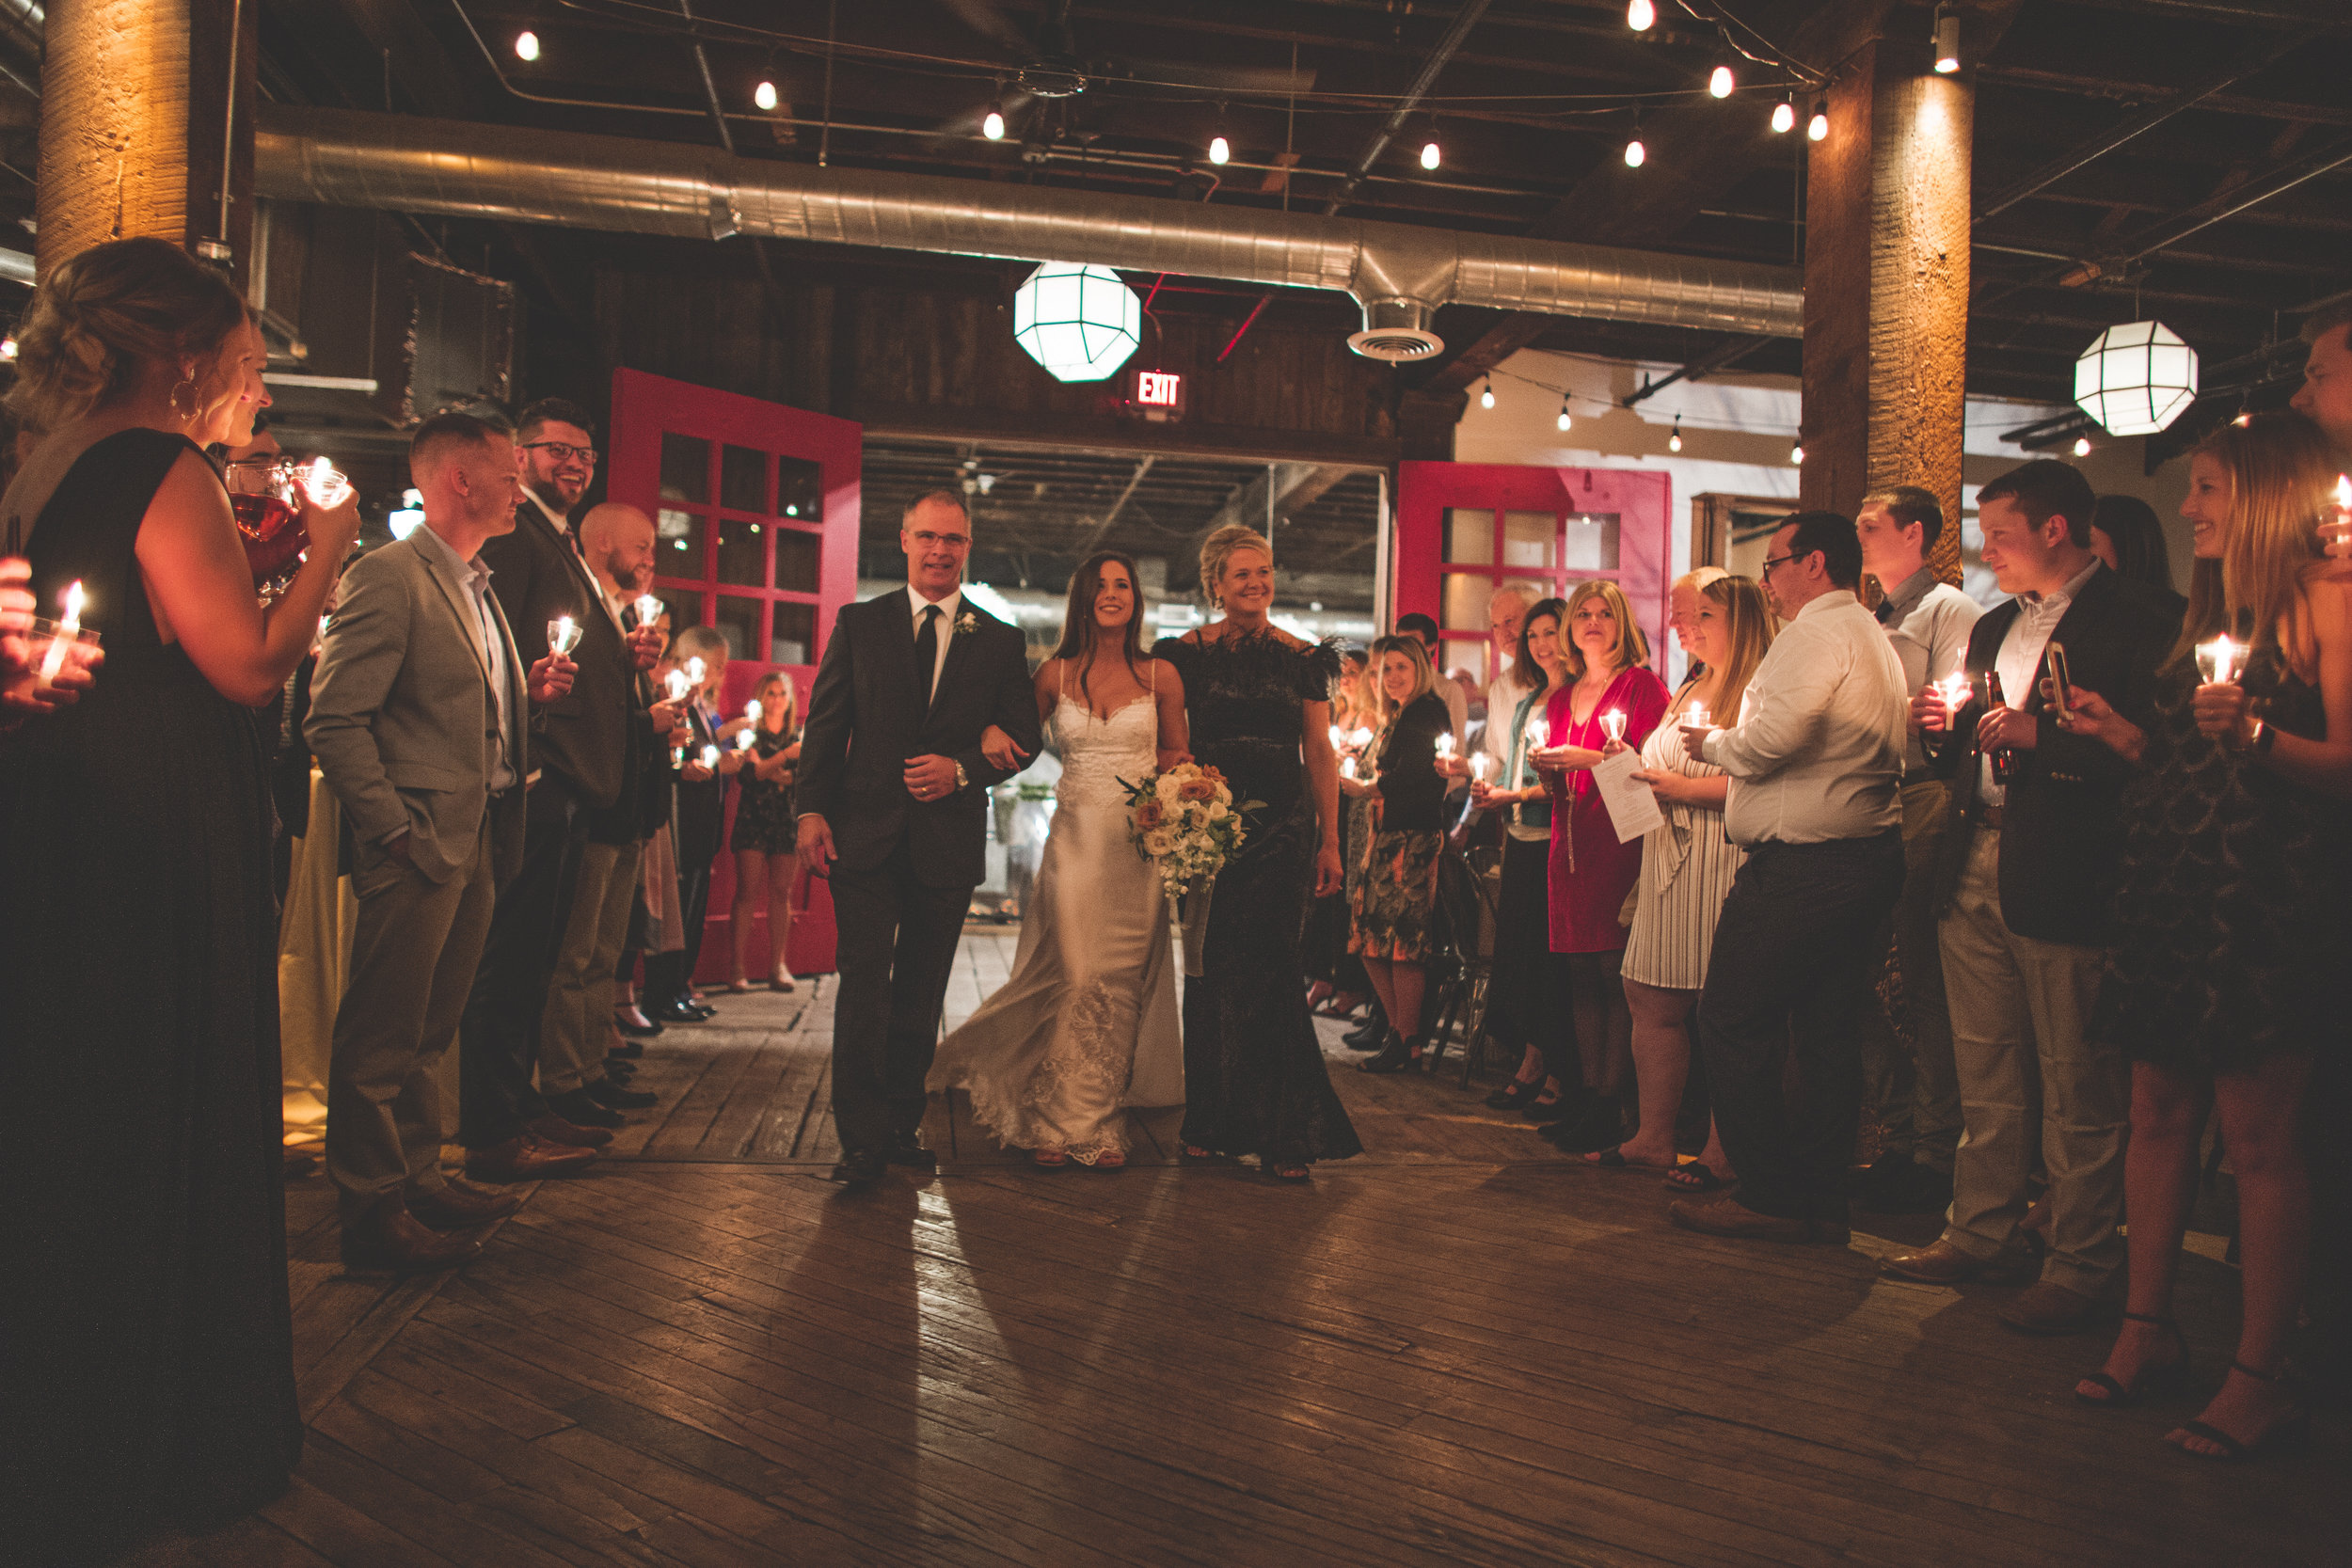 foundation-event-space-kansas-city-wedding-photographer-jason-domingues-photography-kylie-justin-0313.JPG